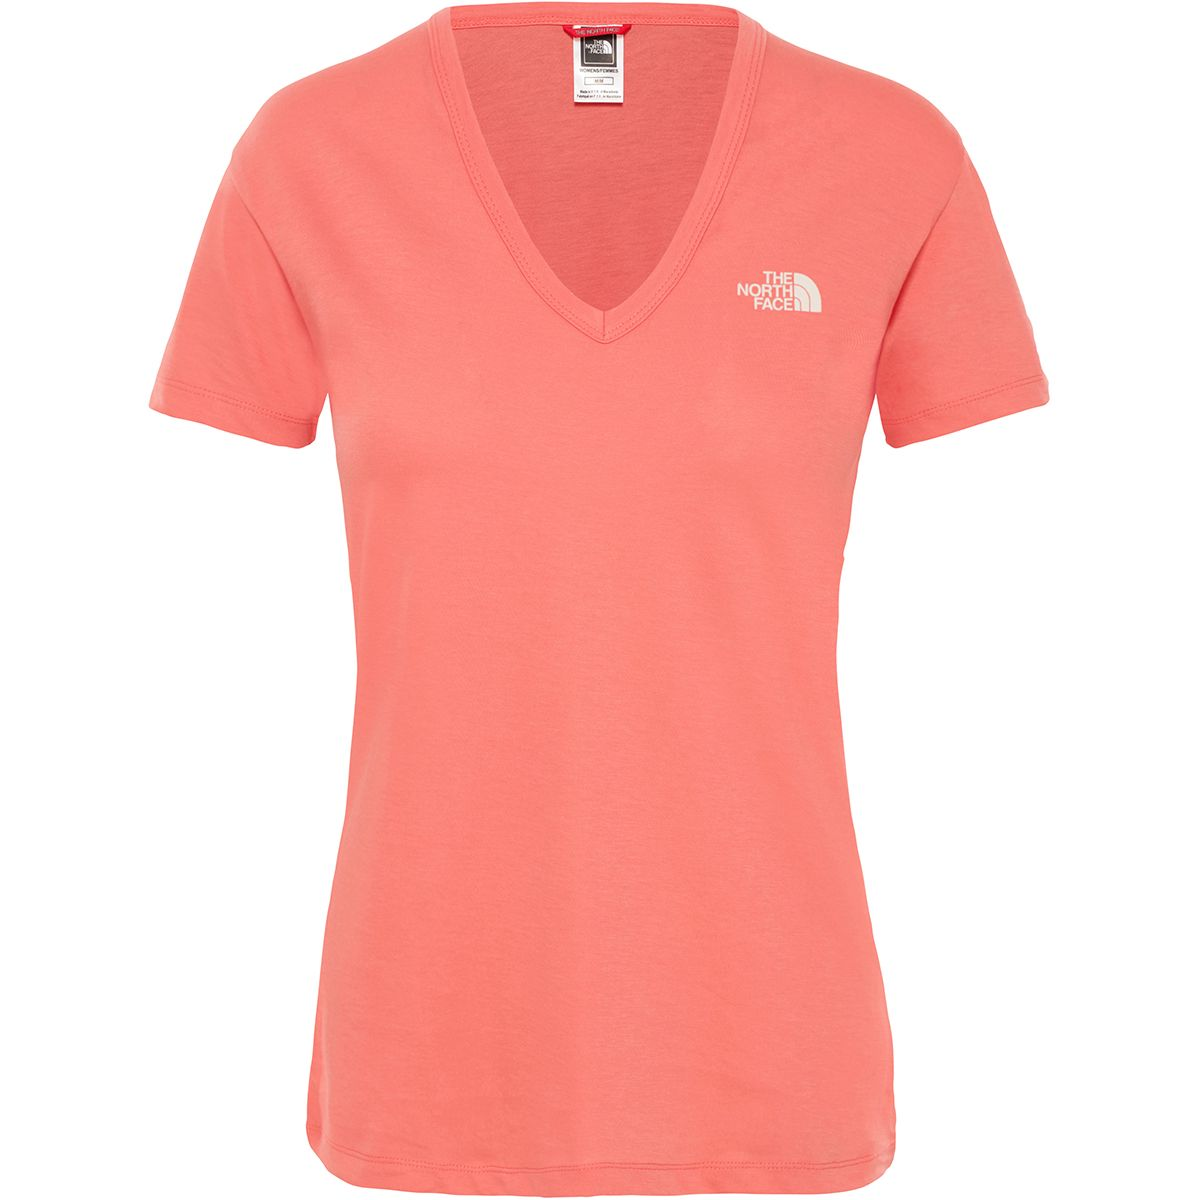 The North Face Damen Simple Dom T-Shirt (Größe XS, Rot) | T-Shirts Freizeit > Damen